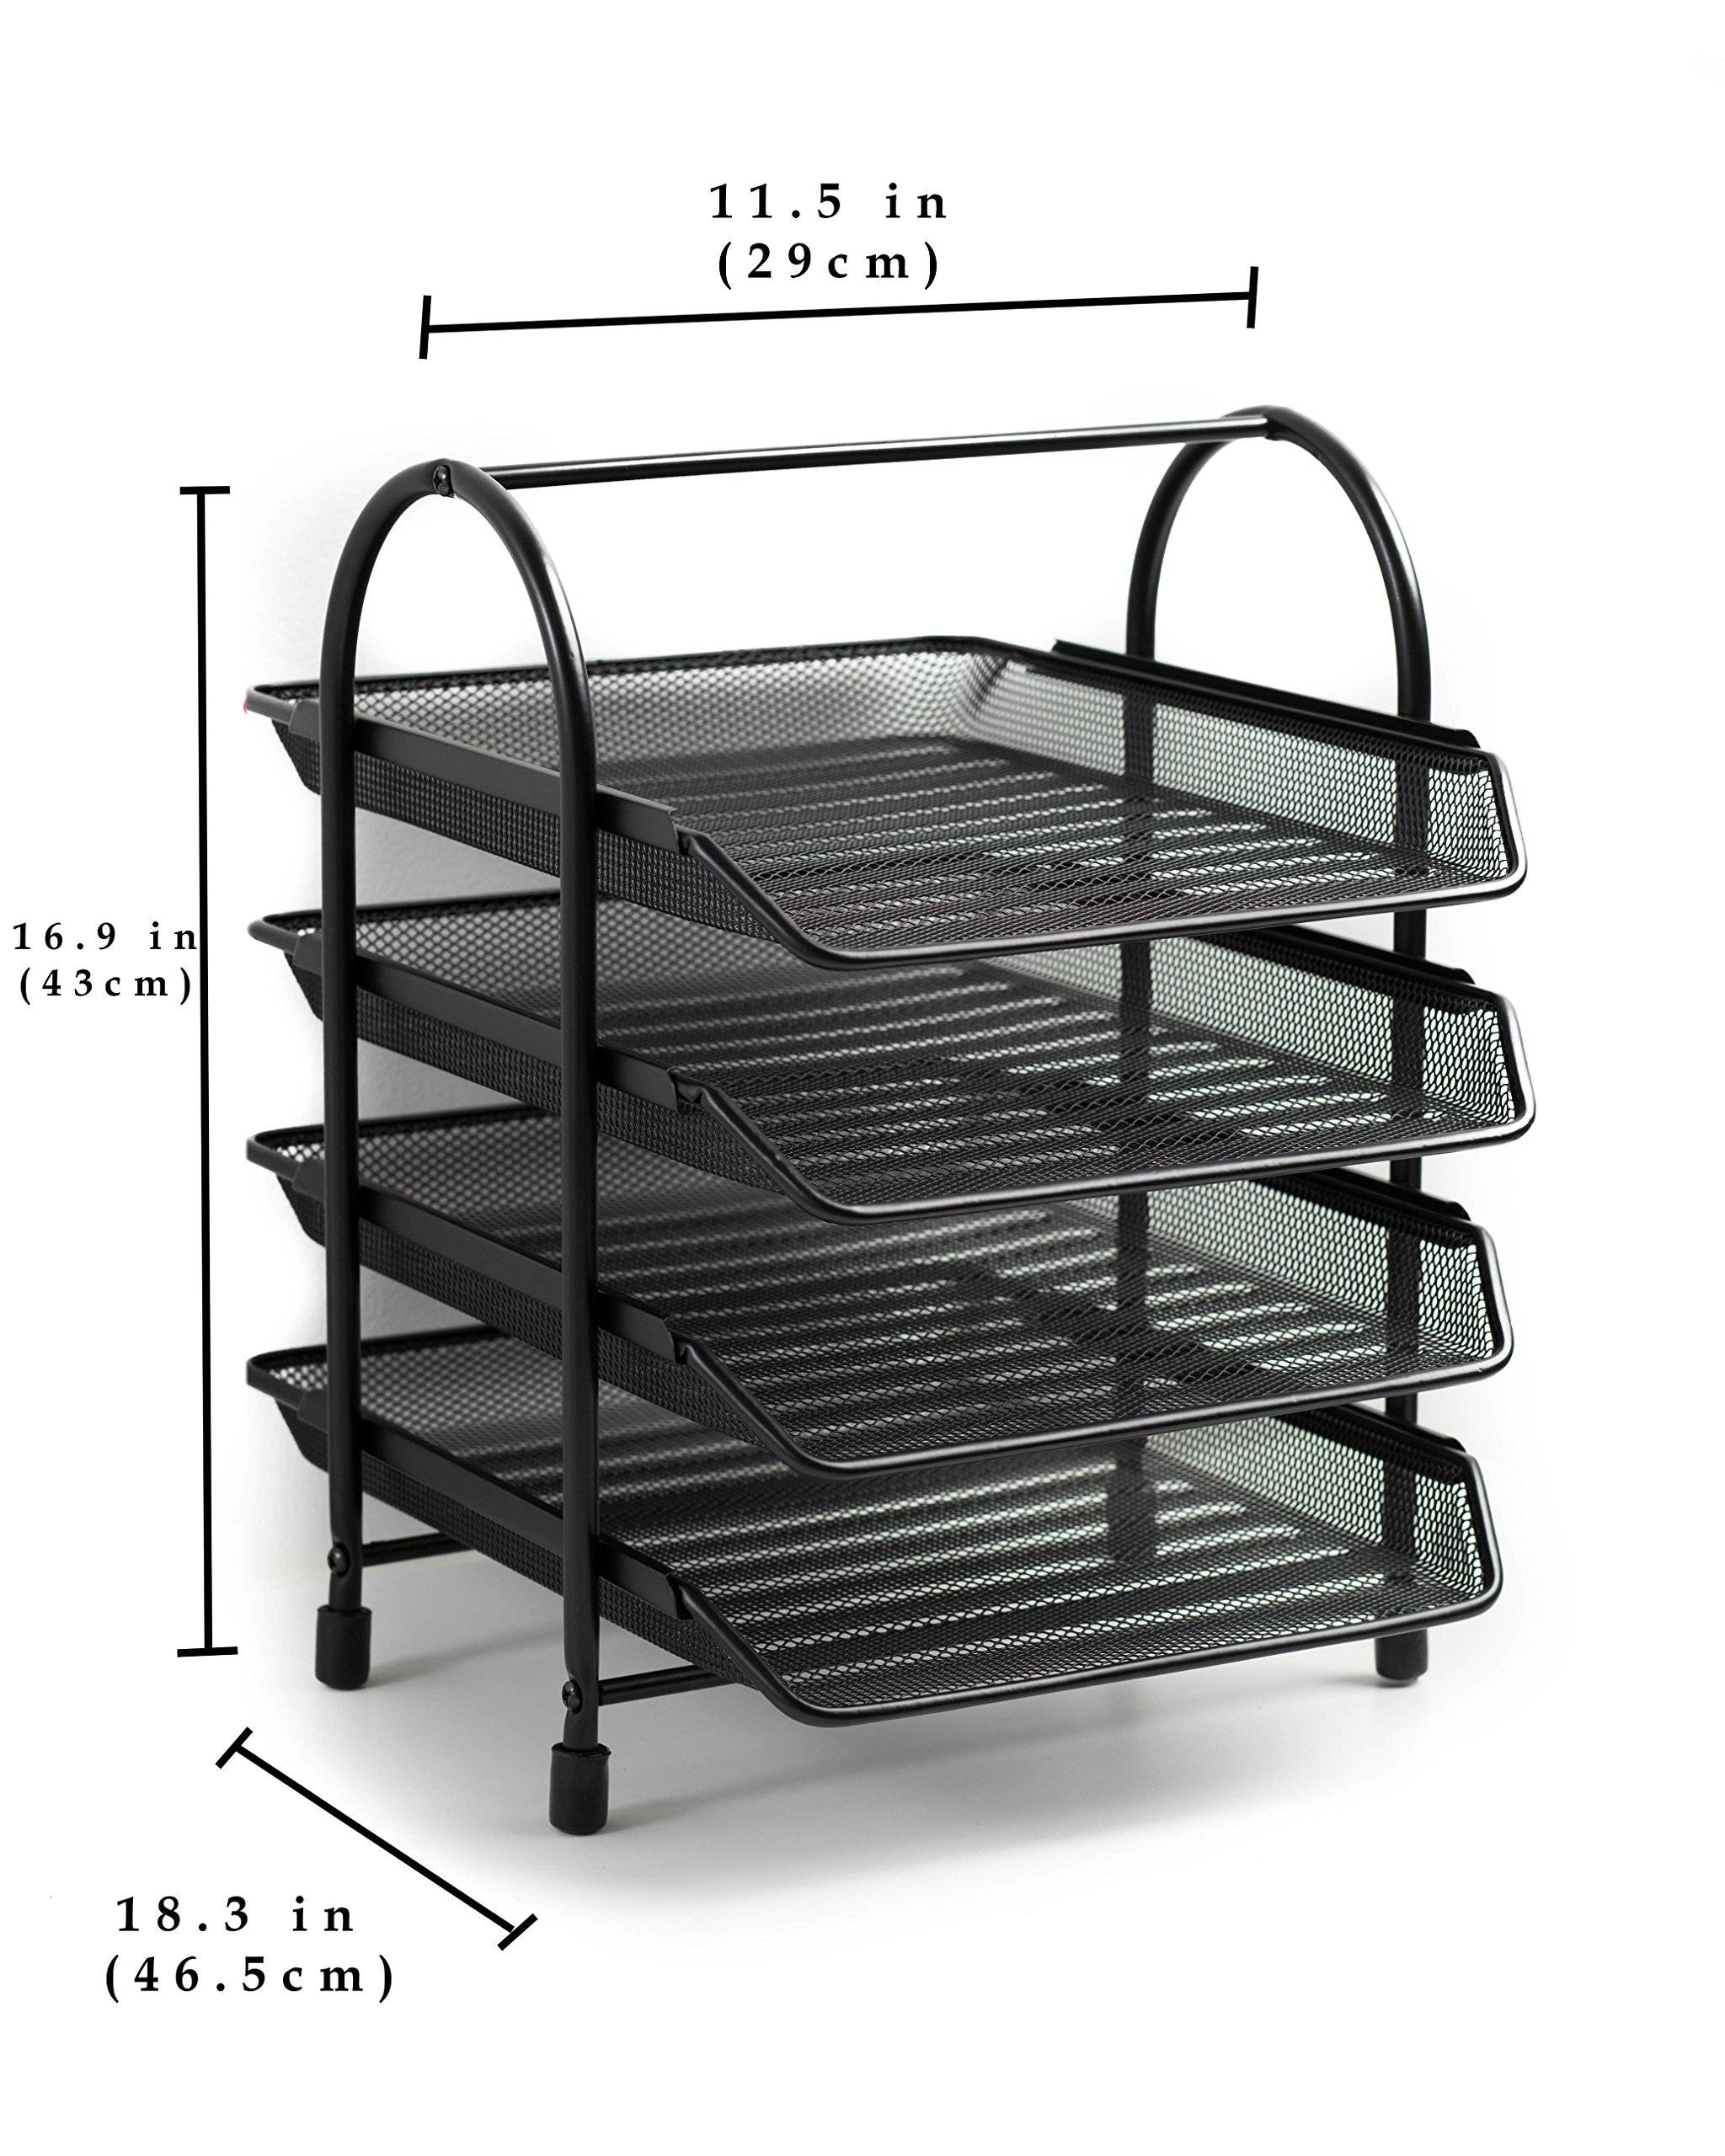 Klickpick Office 4 Tier Heavy Duty Metal Desktop Letter Tray l Document Organizer Tray l Magazine Holder l Paper File Newspaper Organizer Tray (Black) by Klickpick Office